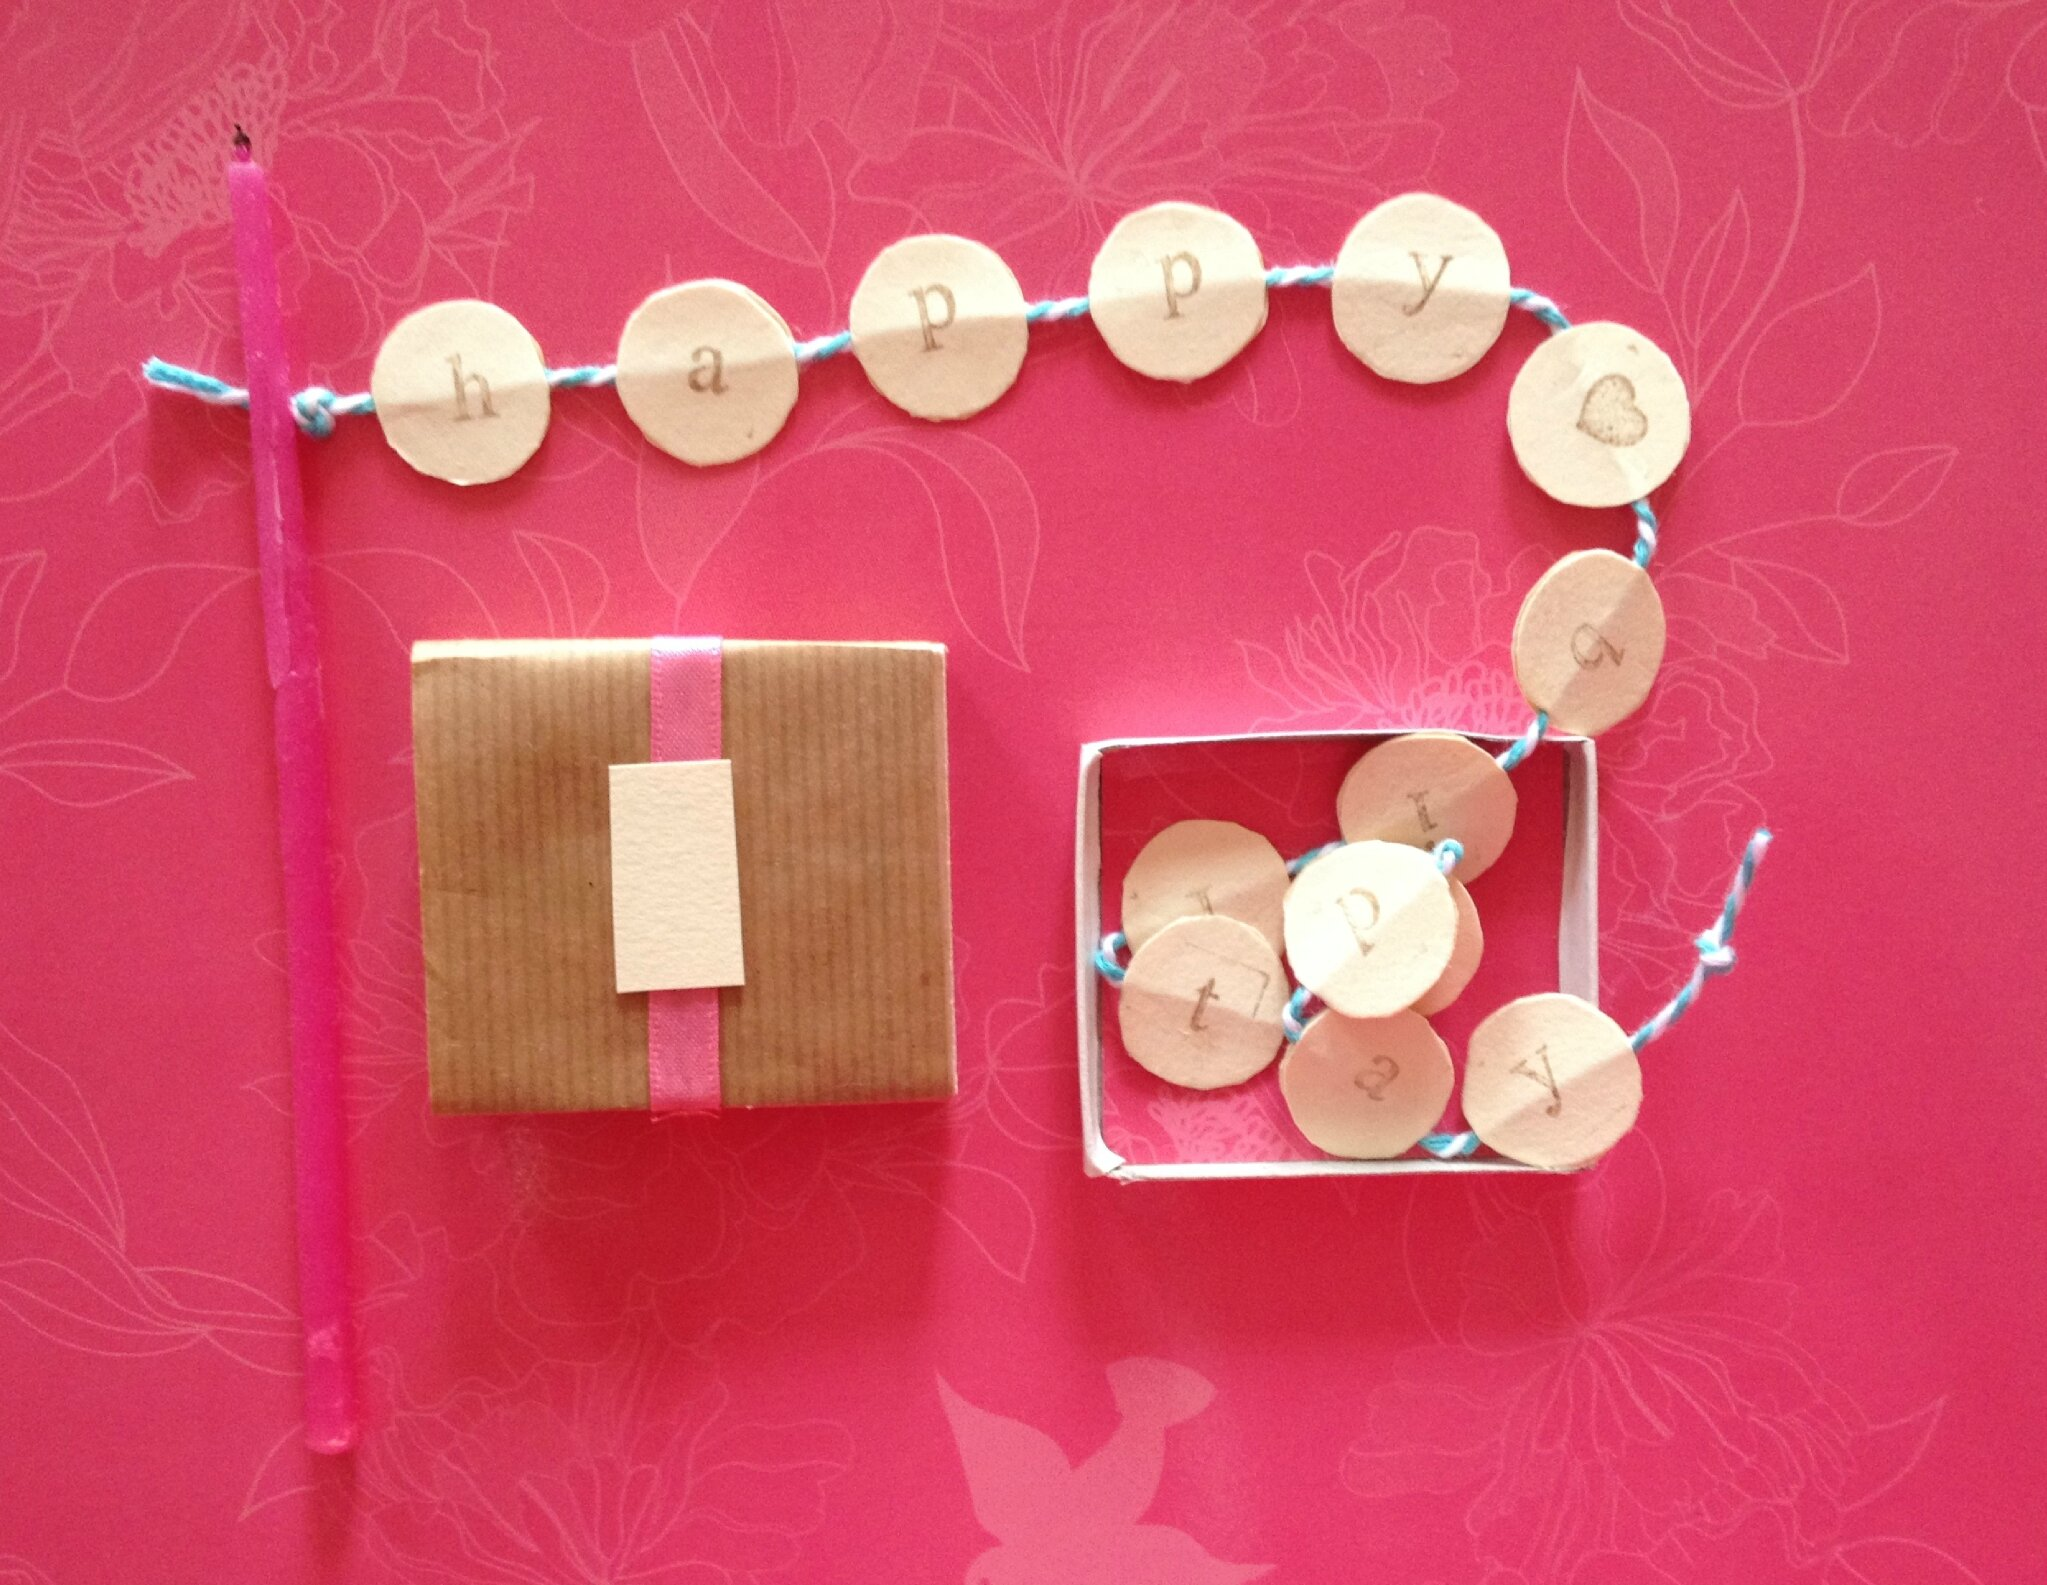 Diy carte anniversaire peque as ideas entre amigas - Diy deco anniversaire ...